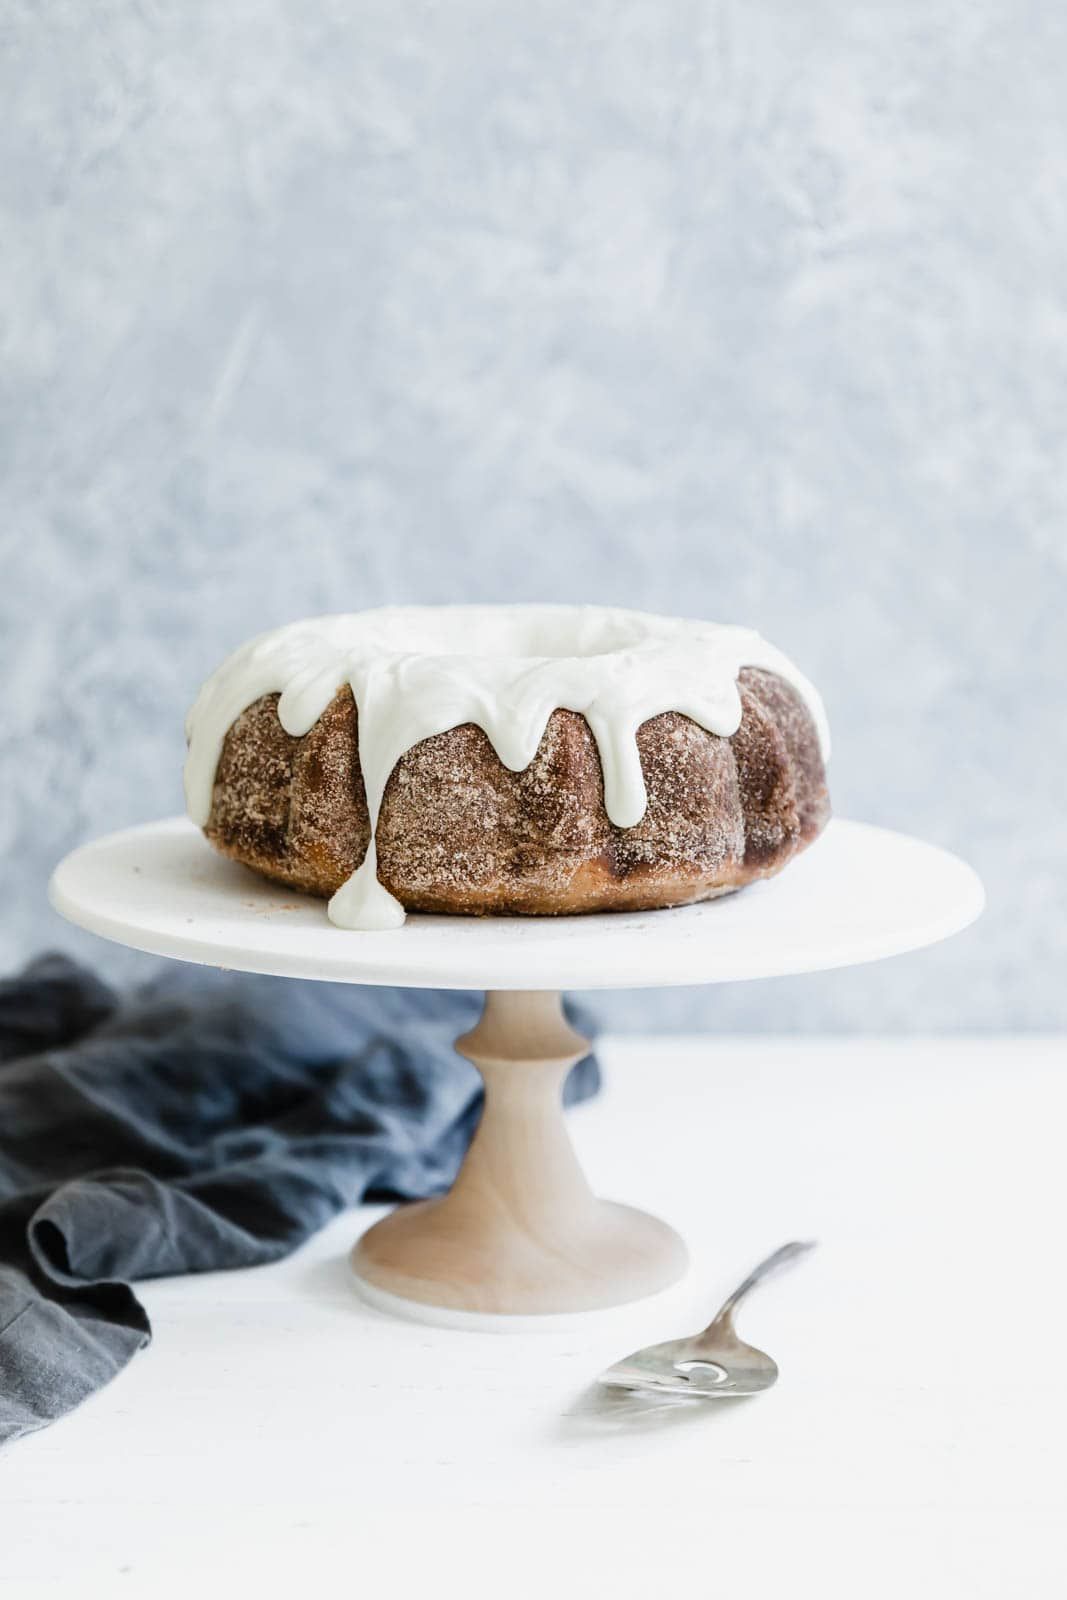 Cinnamon Bundt Cake on cake stand with spatula